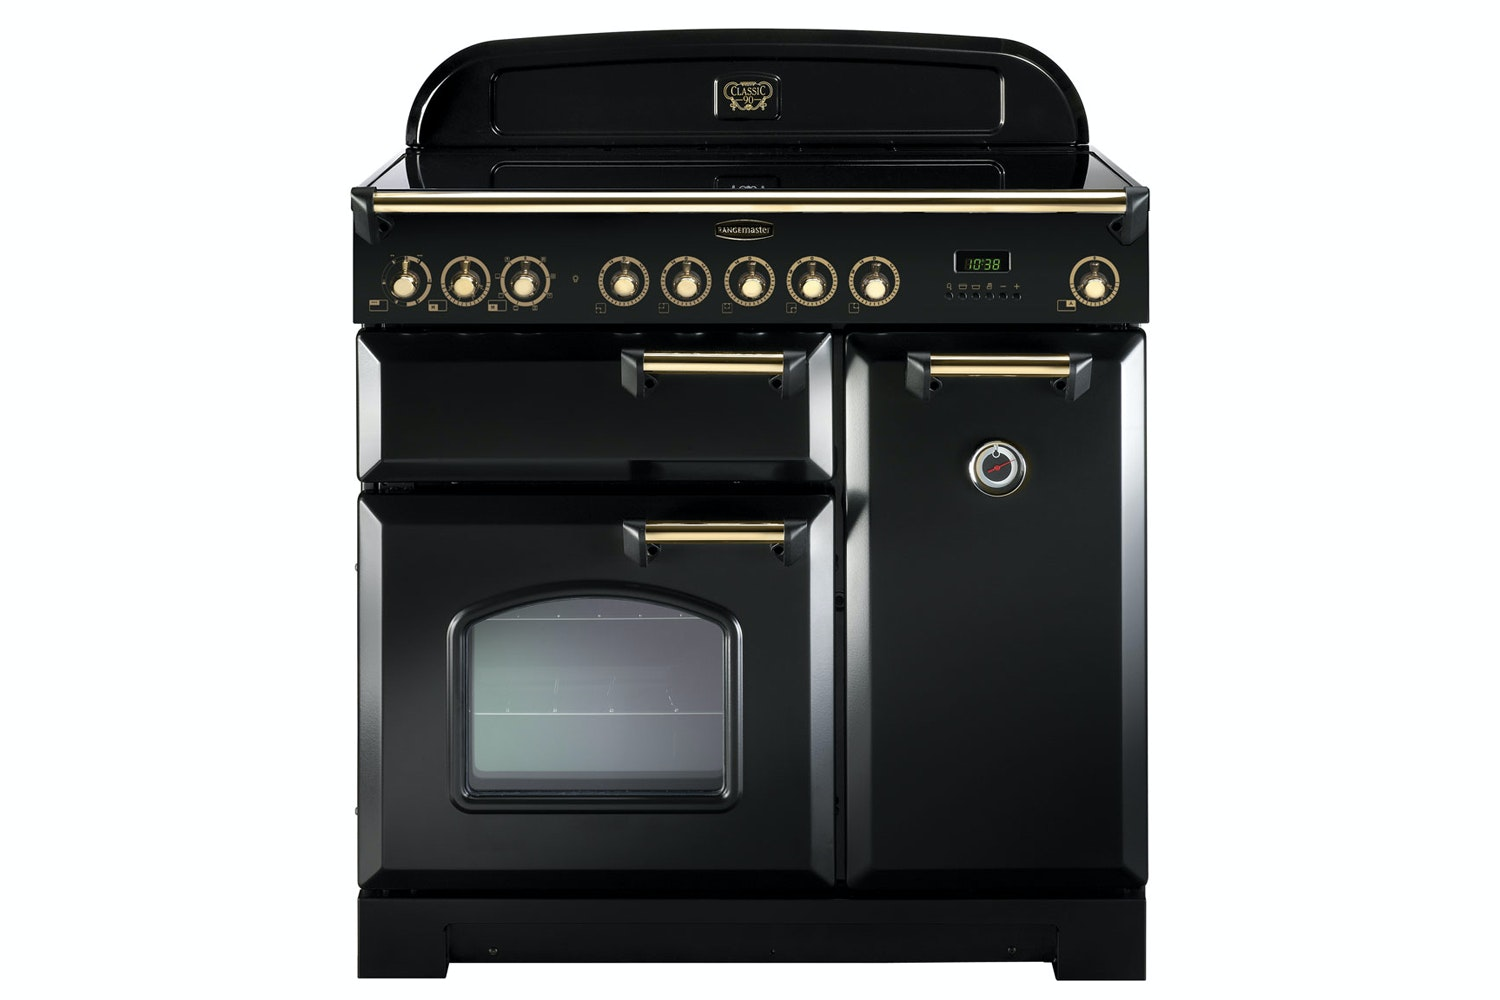 Rangemaster Classic Deluxe 90cm Electric Range Cooker | CDL90EIBL/B | Black